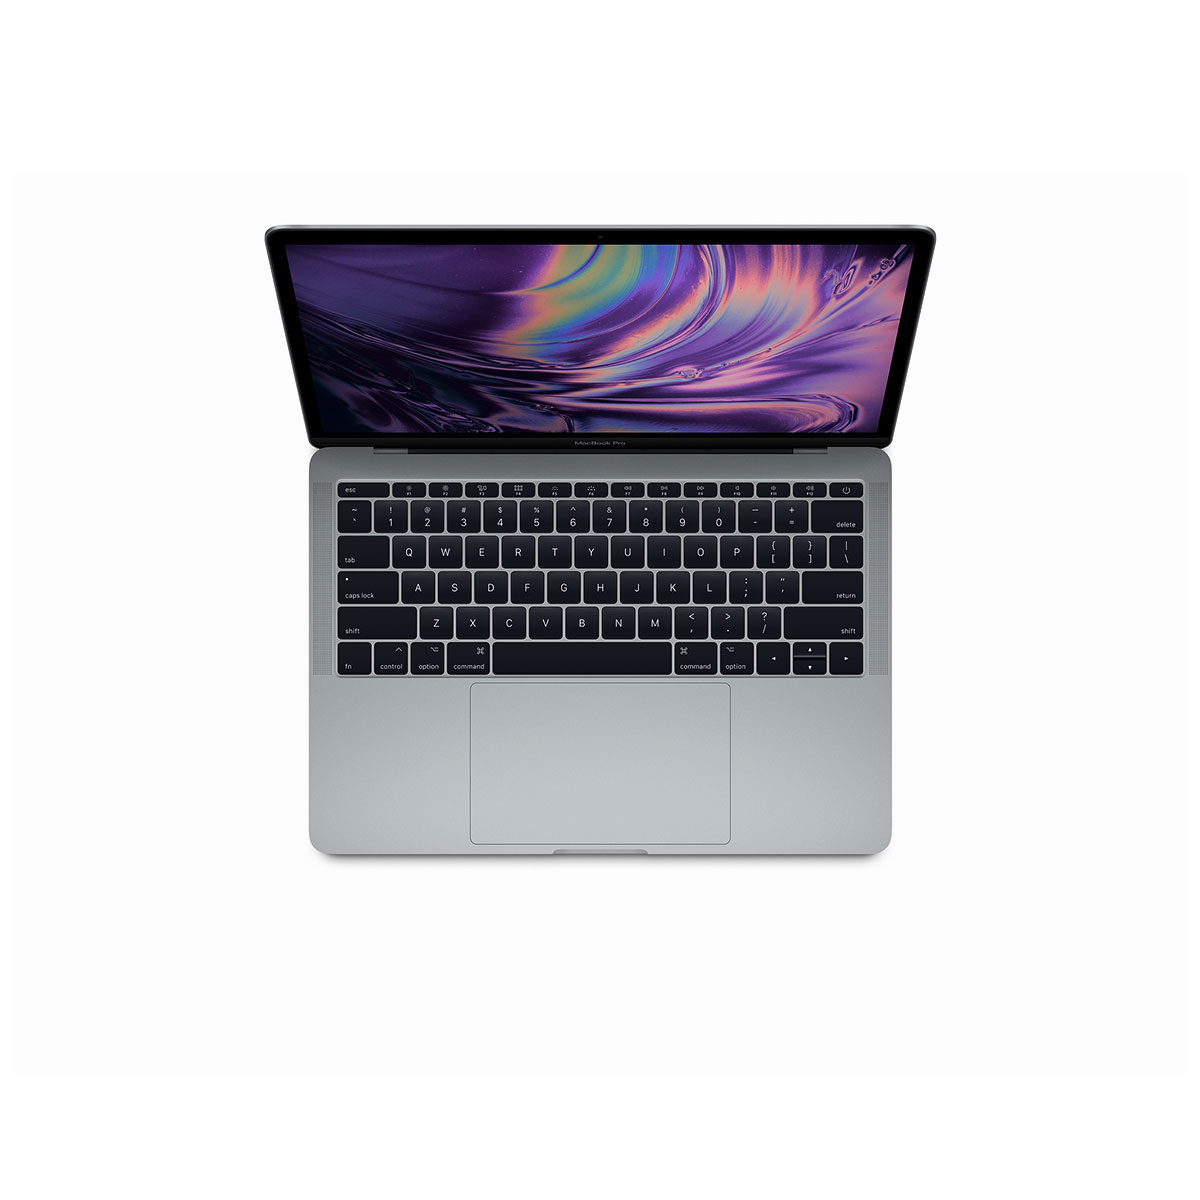 MacBook Pro 13-inch Space Gray 2.3GHz i5 7th Gen 256GB SSD